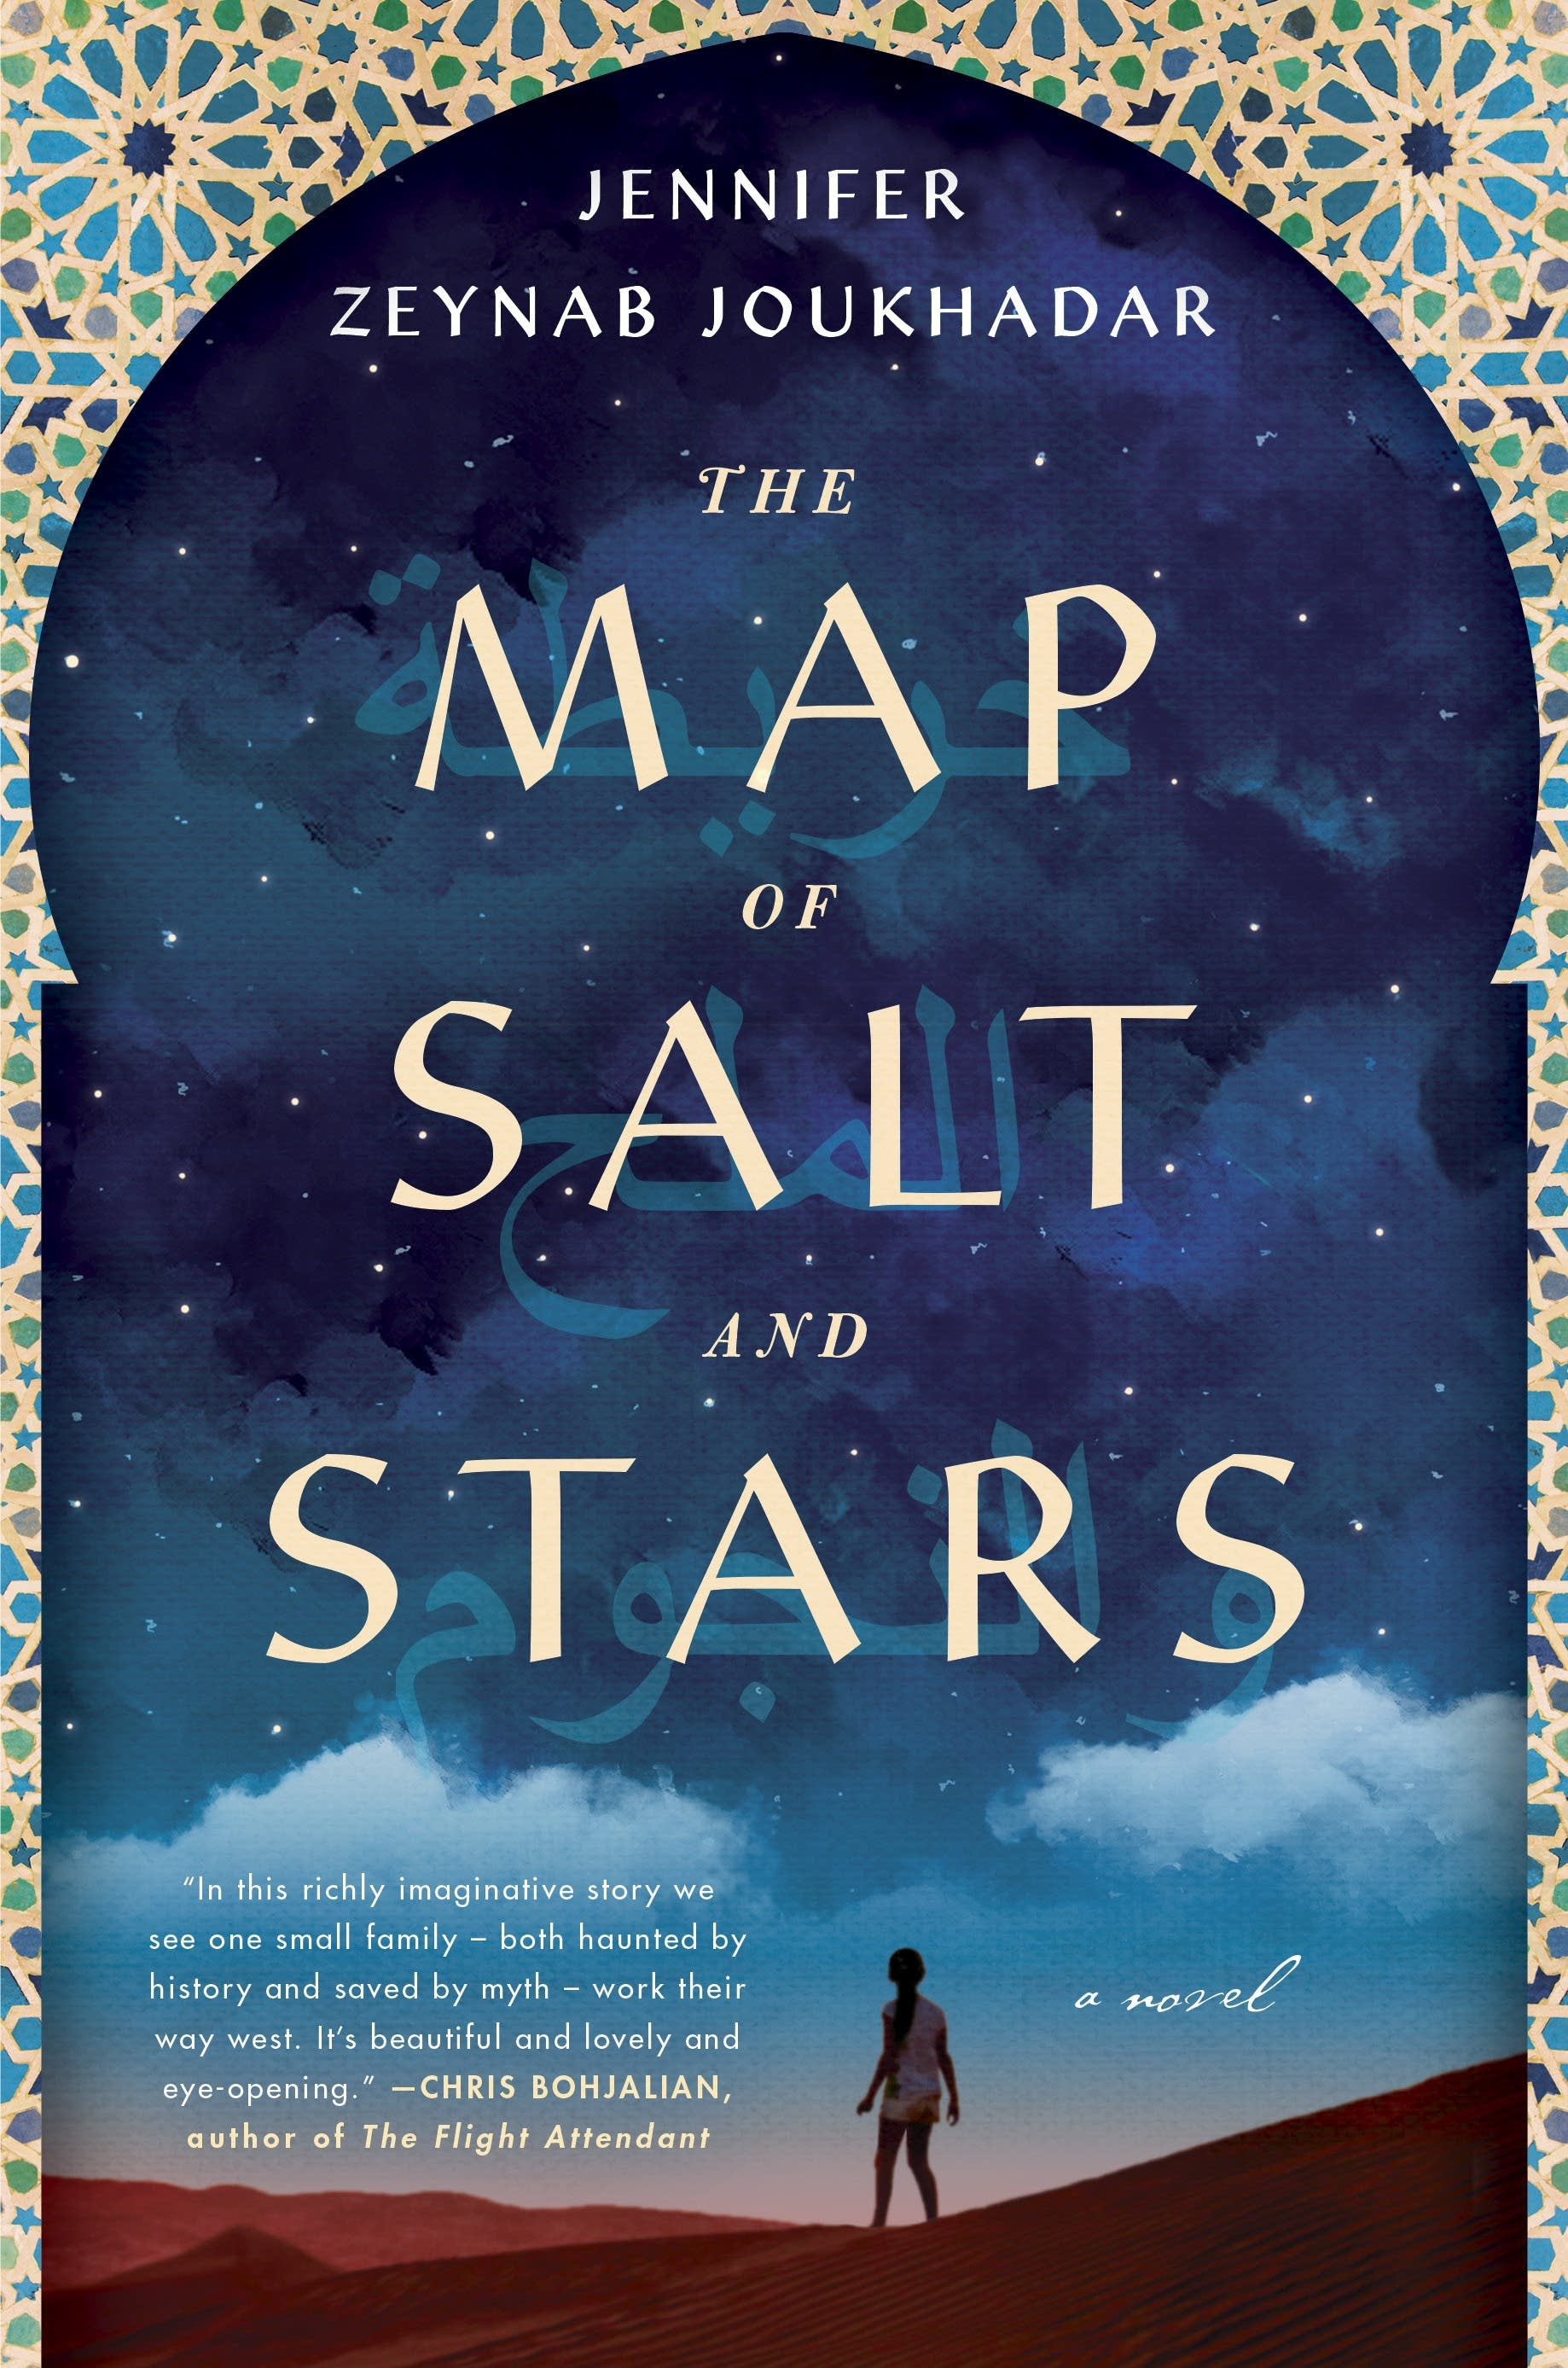 Jennifer Zeynab Joukhadar's debut novel, 'The Map of Salt and Stars'